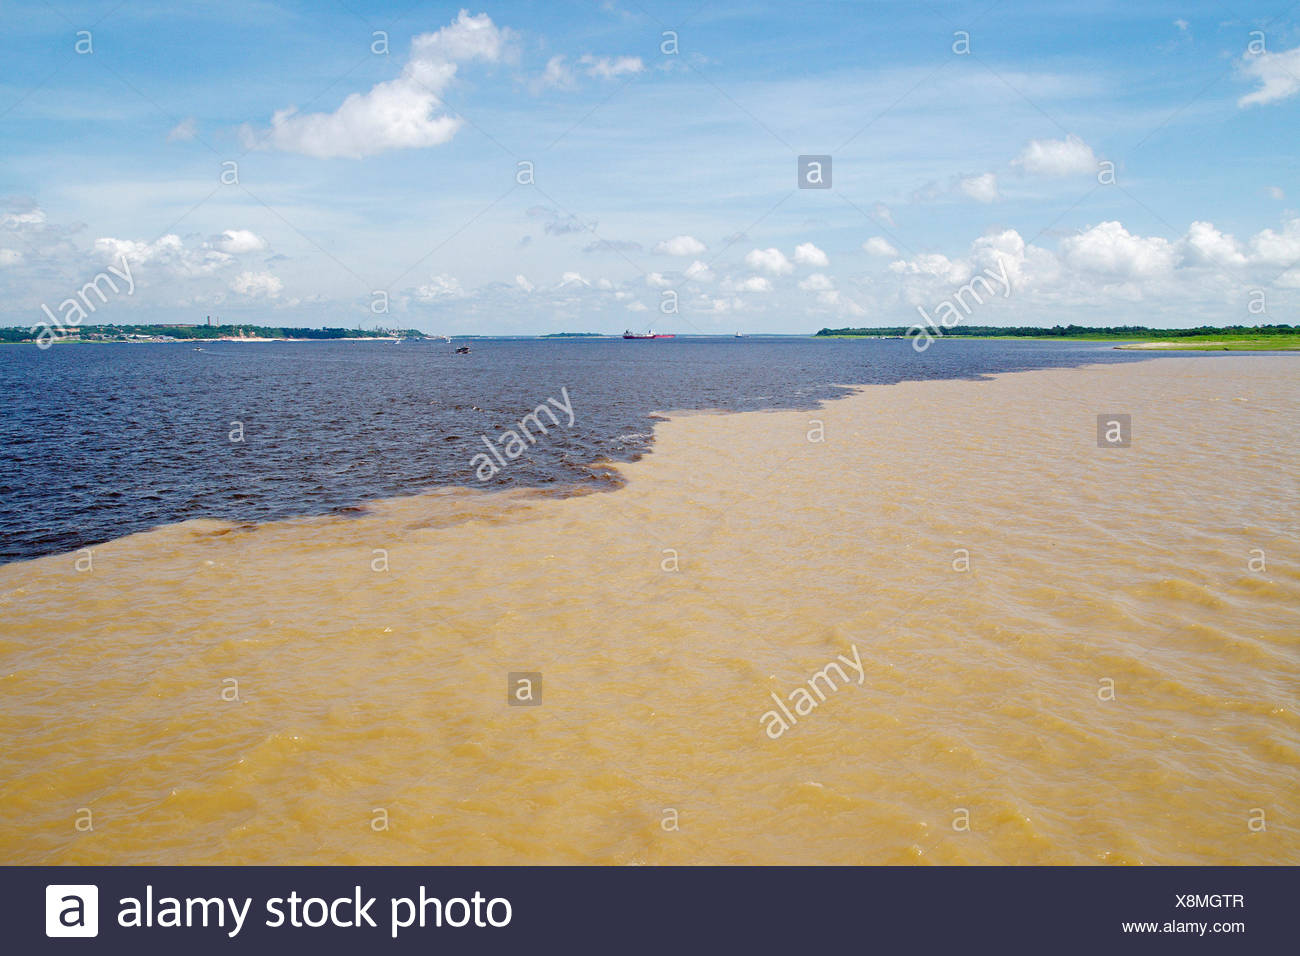 Meeting of Waters, confluence between Rio Negro and Rio Solim�es, Amazon River, Brazil, Manaus - Stock Image